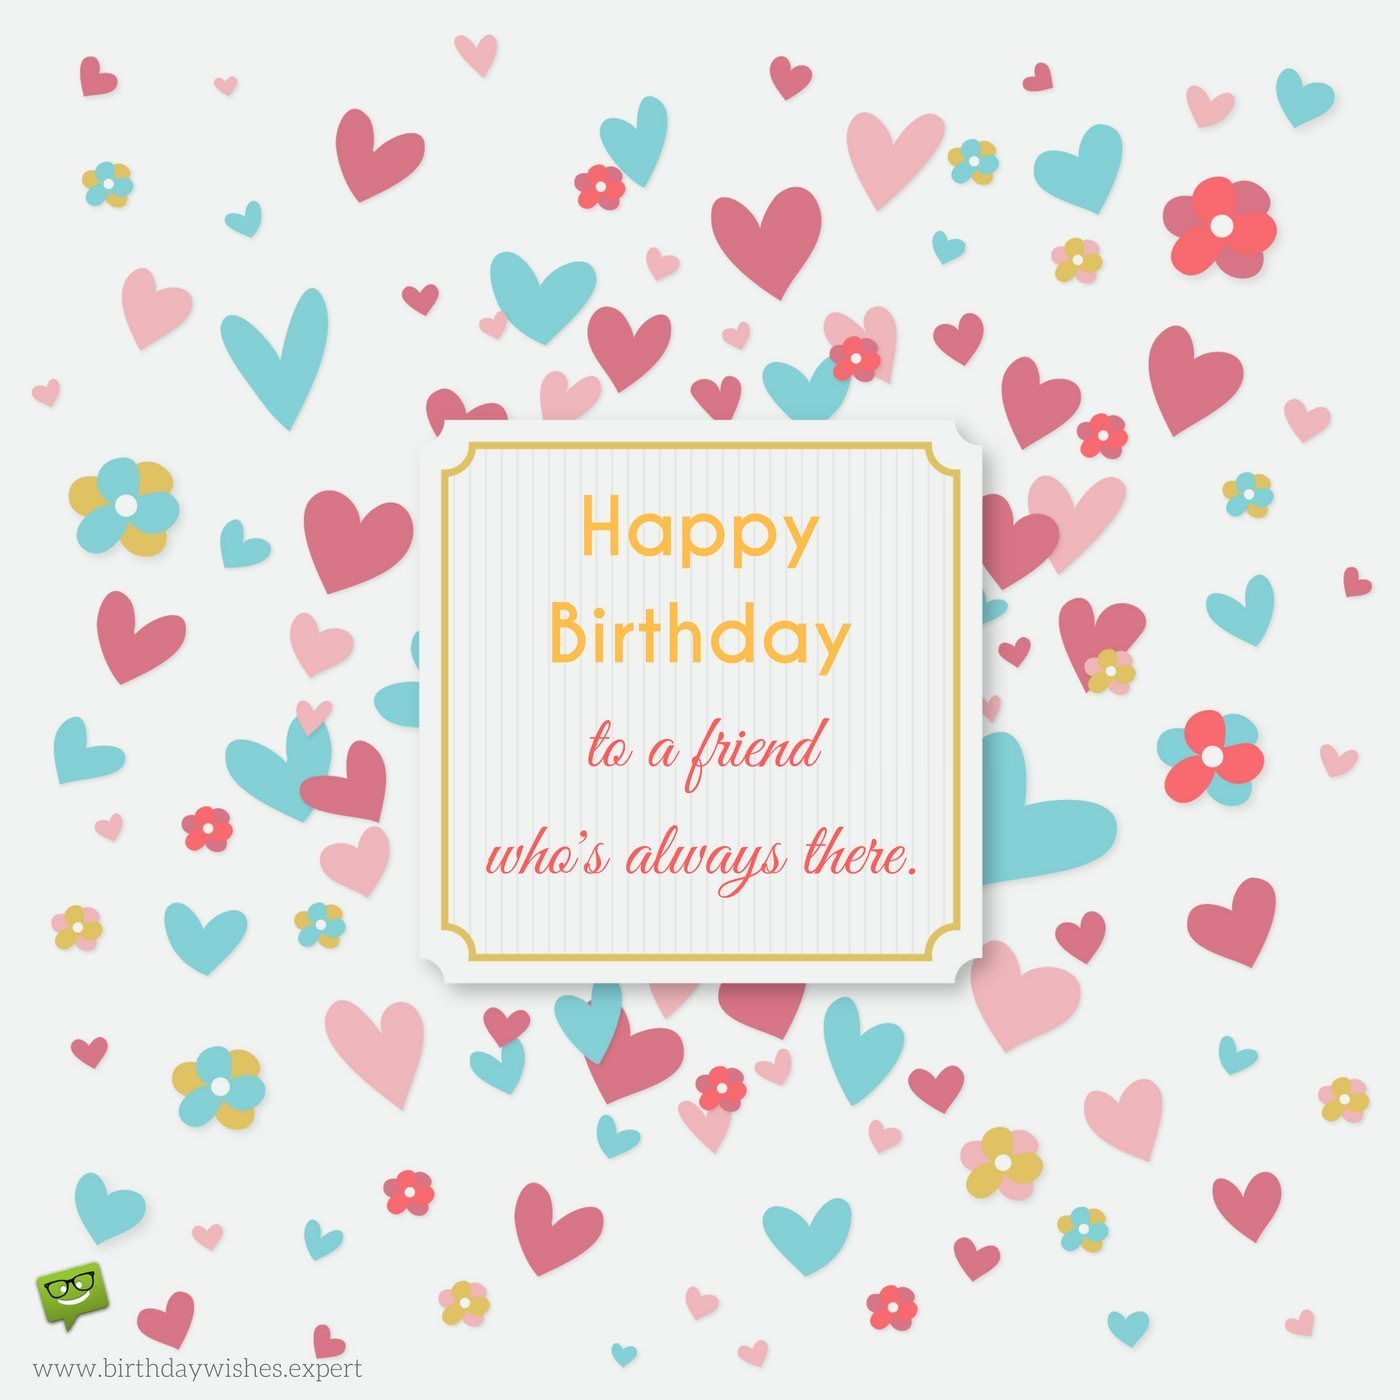 happiest birthday ; Happy-Birthday-to-a-friend-who-is-always-there